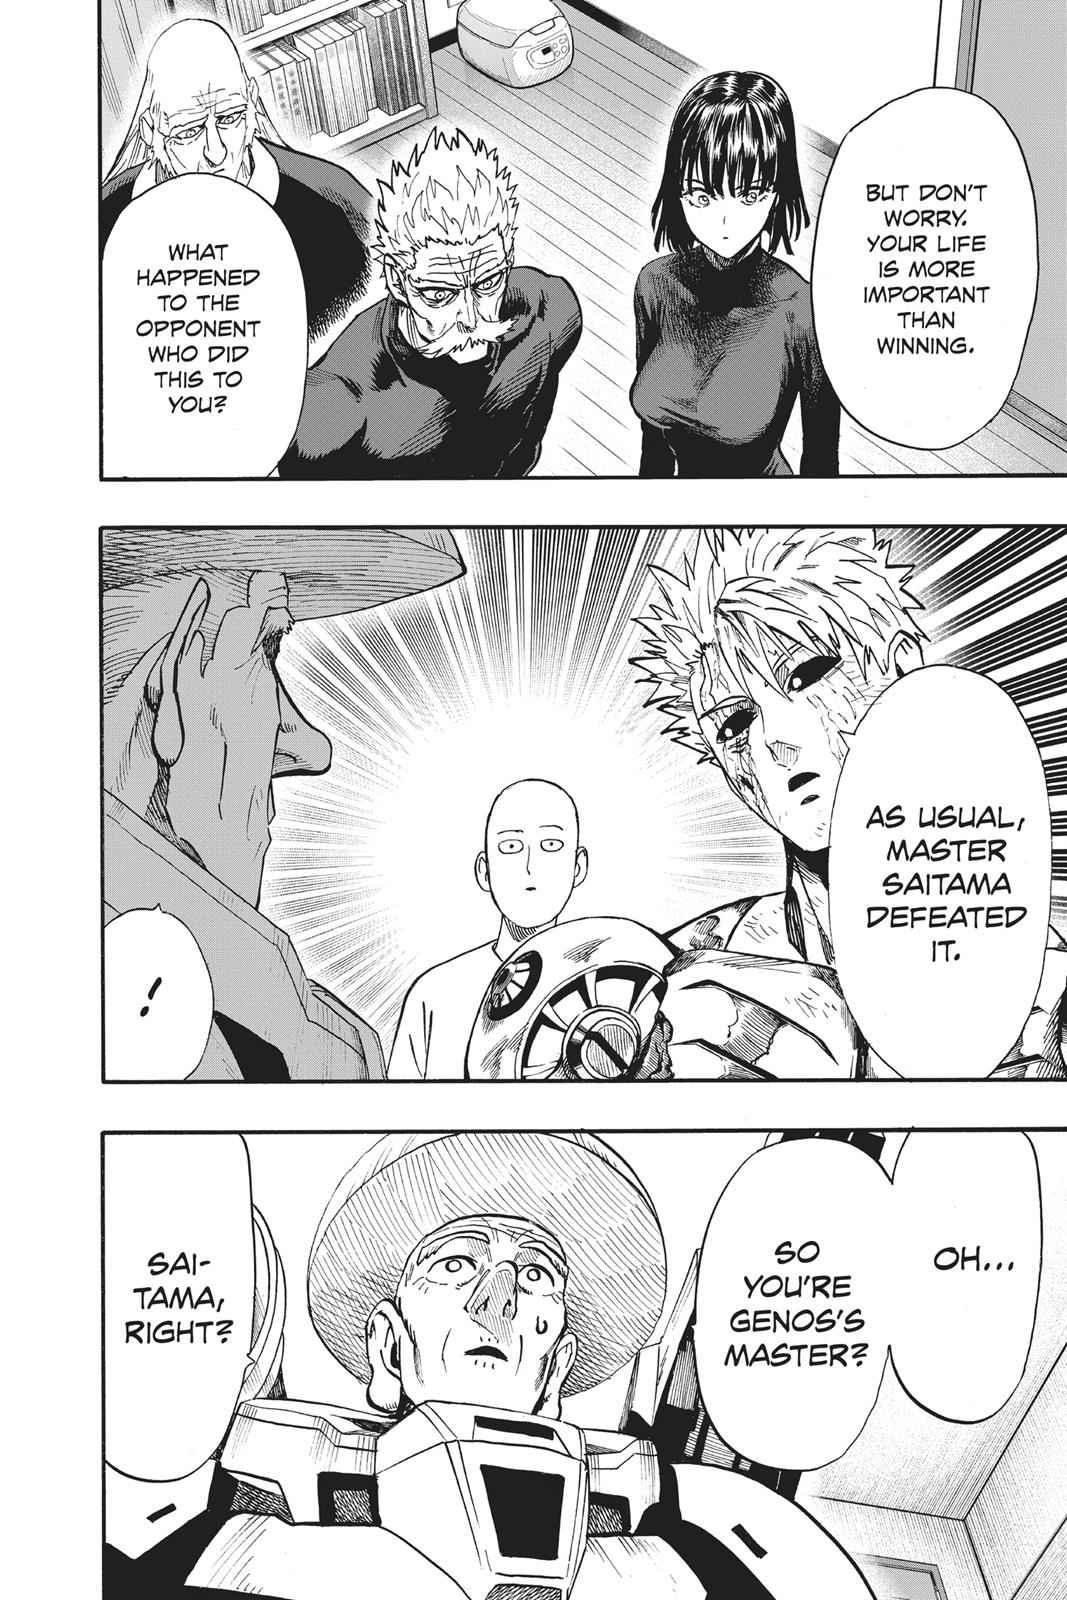 One-Punch Man Chapter 90 Page 20